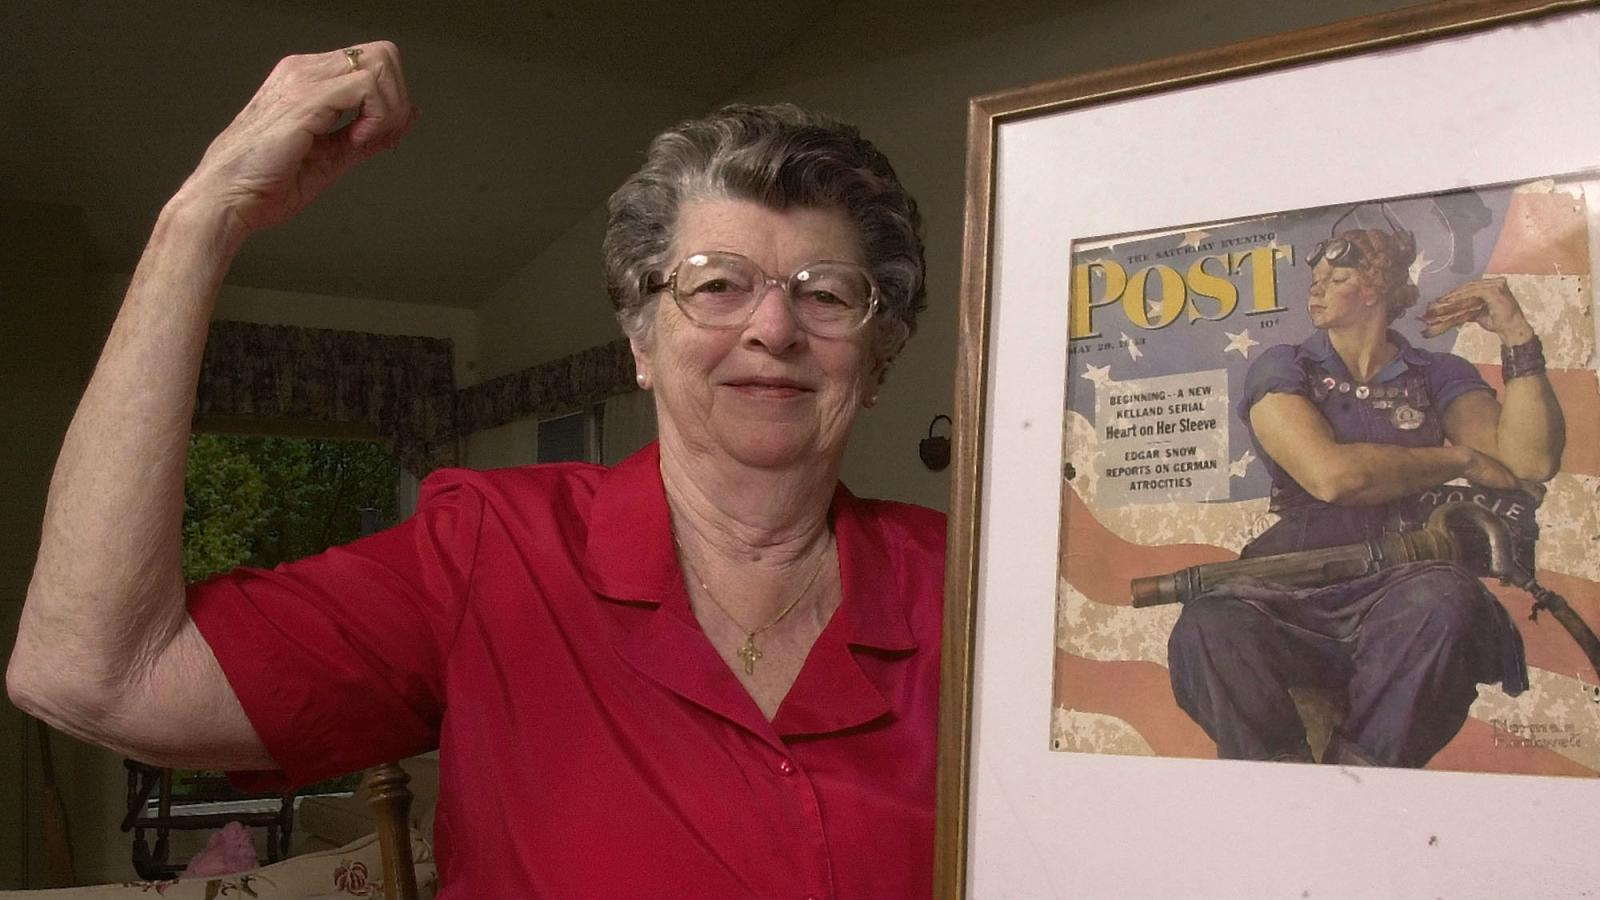 The Woman Who Inspired Rosie The Riveter Has Died At 92 Quartz